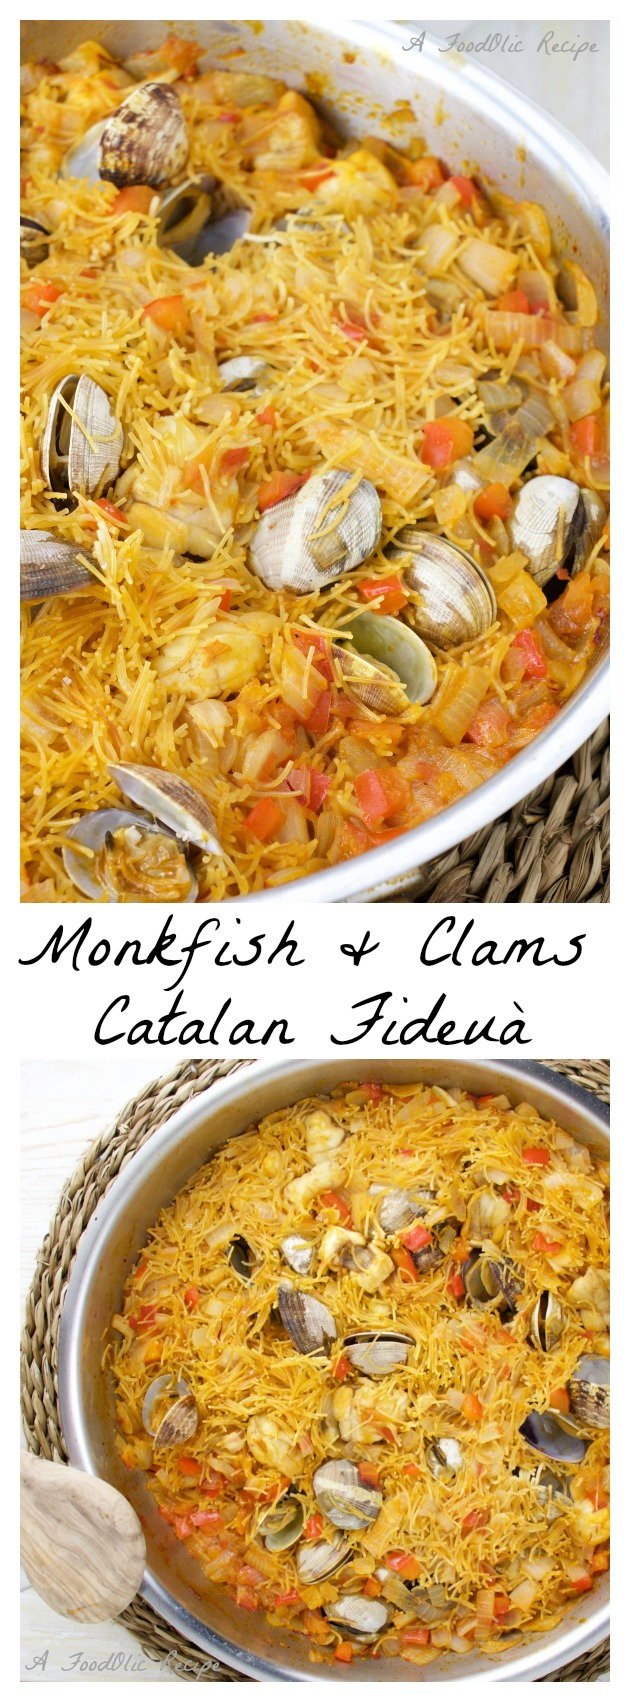 Monkfish and Clams Fideuà is an authentic Catalan dish similar to a paella although the rice is replaced by Fideus, a short thin noodle that is fried, then it soaks the Mediterranean flavoured stock with some extra saffron touch.